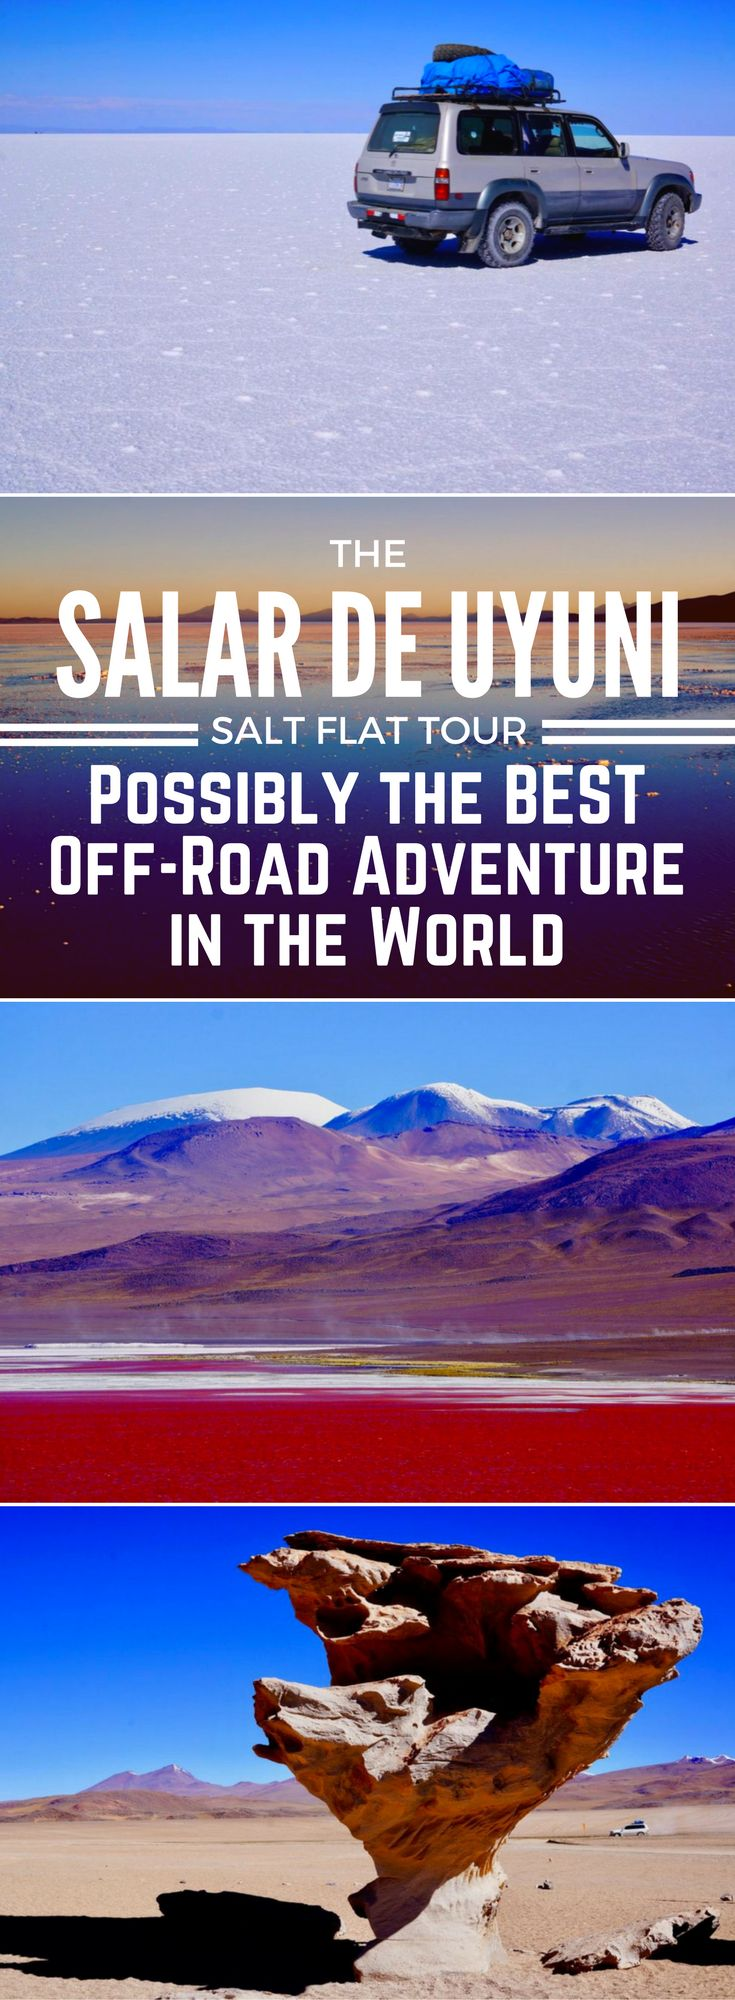 South America adventure highlight- the 3-day Salar de Uyuni Salt Flat tour in Bolivia! Check out our travel guide for tips and advice!